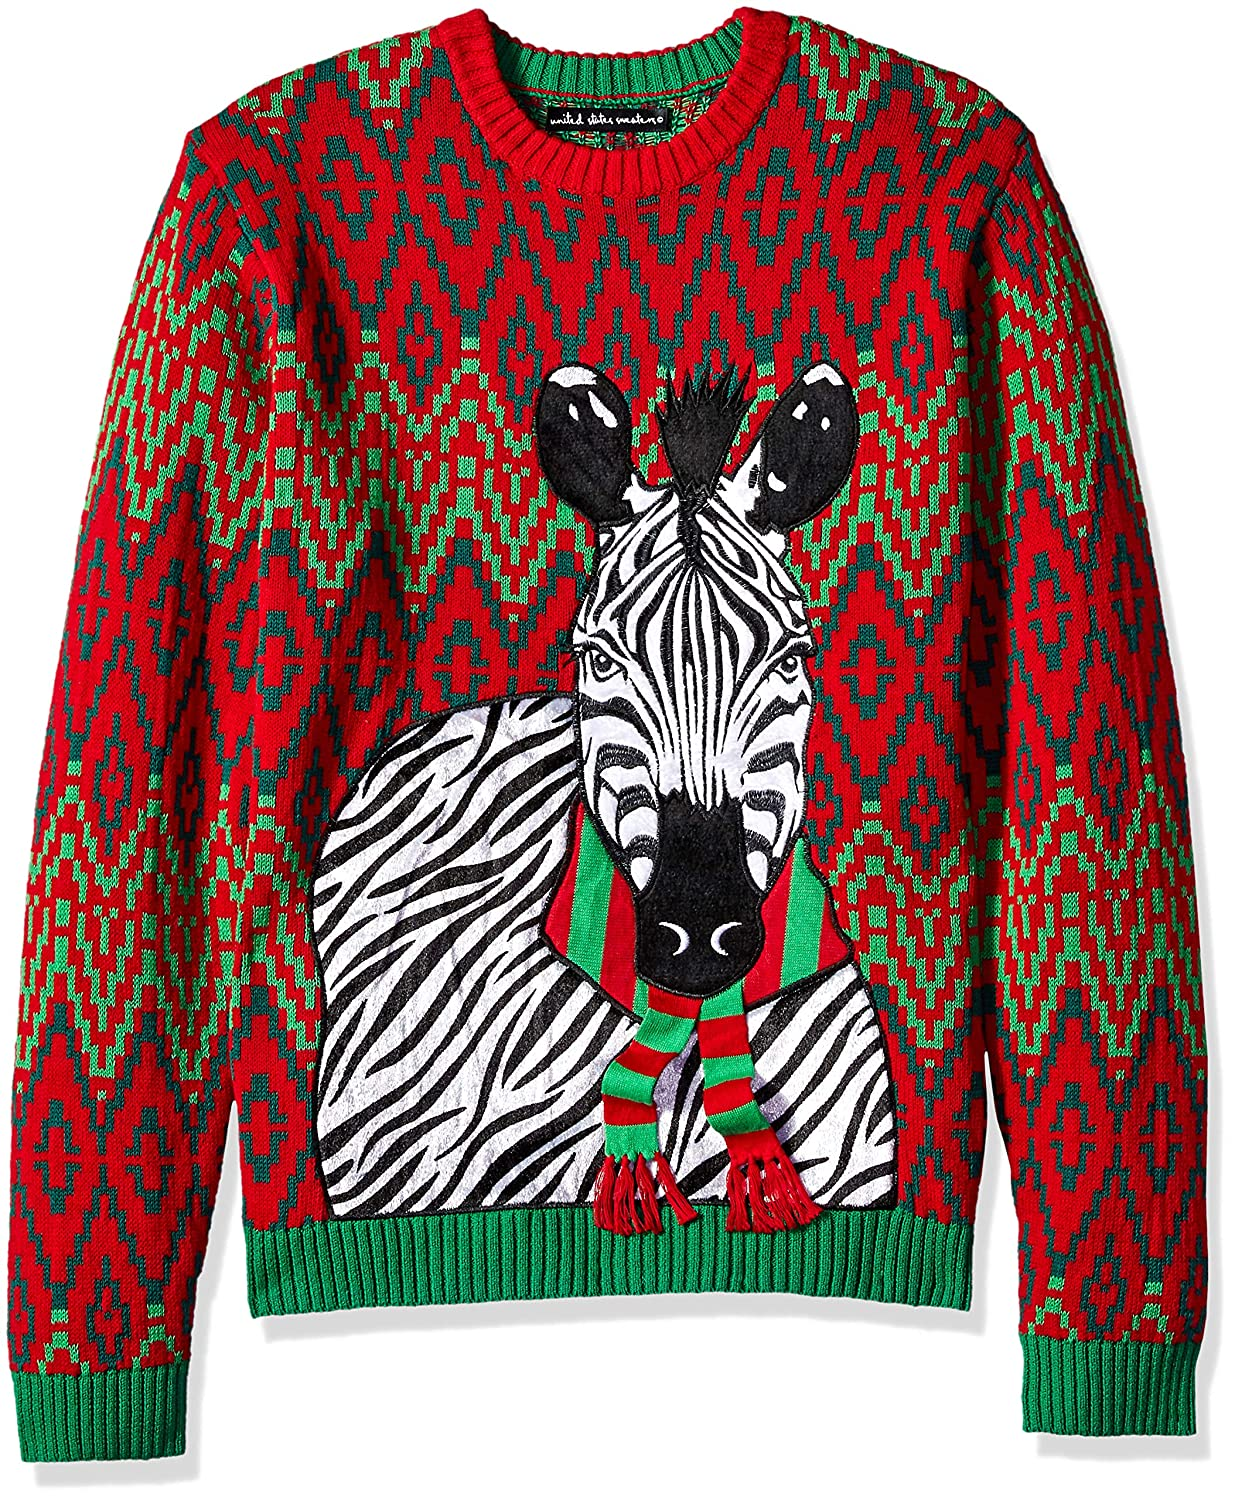 b034b5ad6 Blizzard Bay Mens Zebra Scarf Ugly Christmas Sweater Sweater  Amazon.ca   Clothing   Accessories